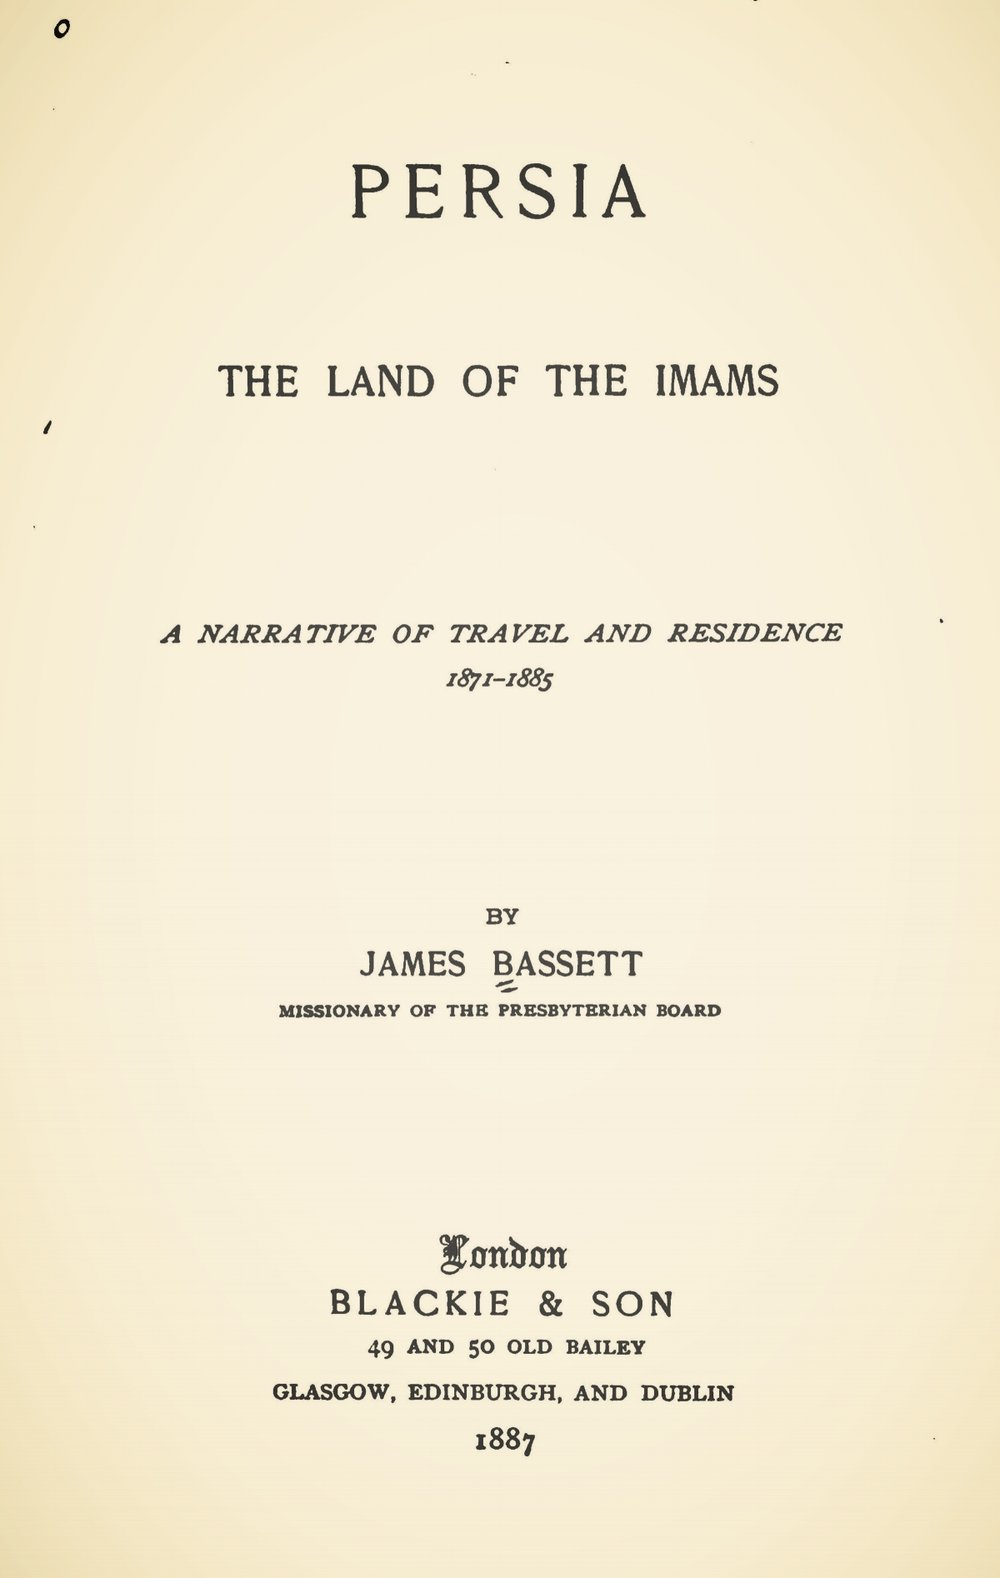 Bassett, James, Persia the Land of the Imams Title Page.jpg